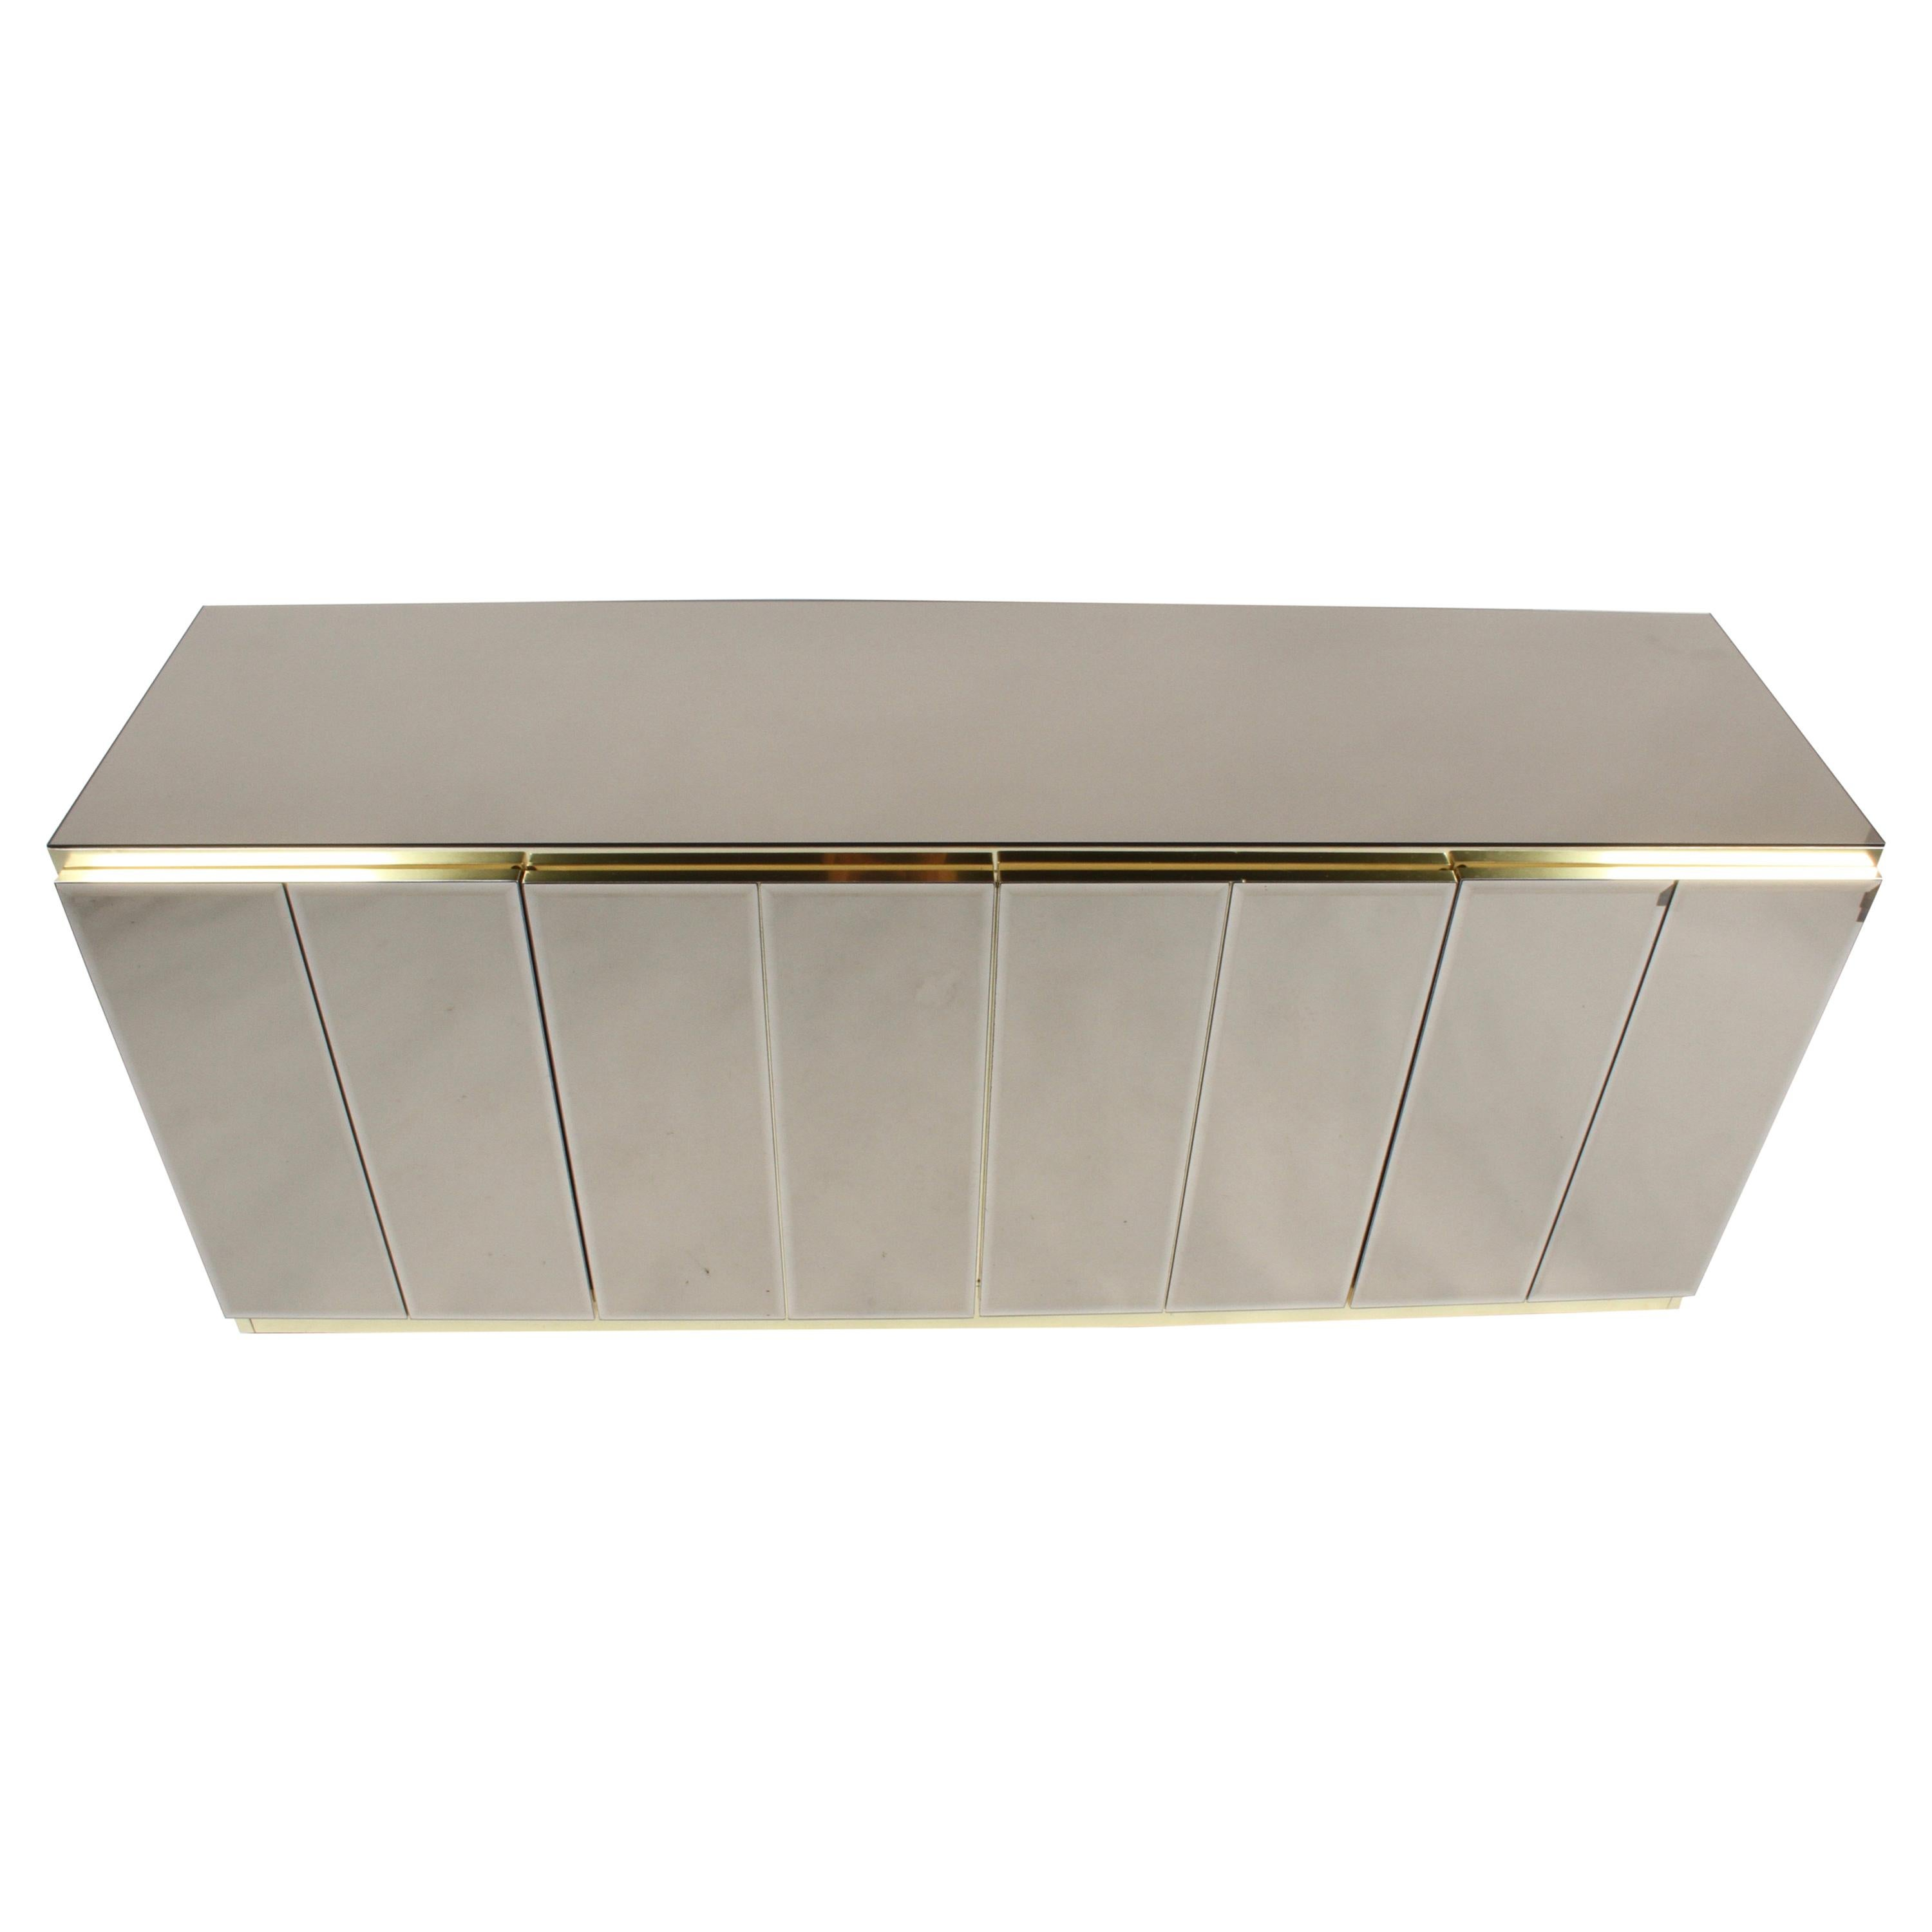 Hollywood Regency Signed Ello Bronze Mirror and Brass Credenza / Sideboard